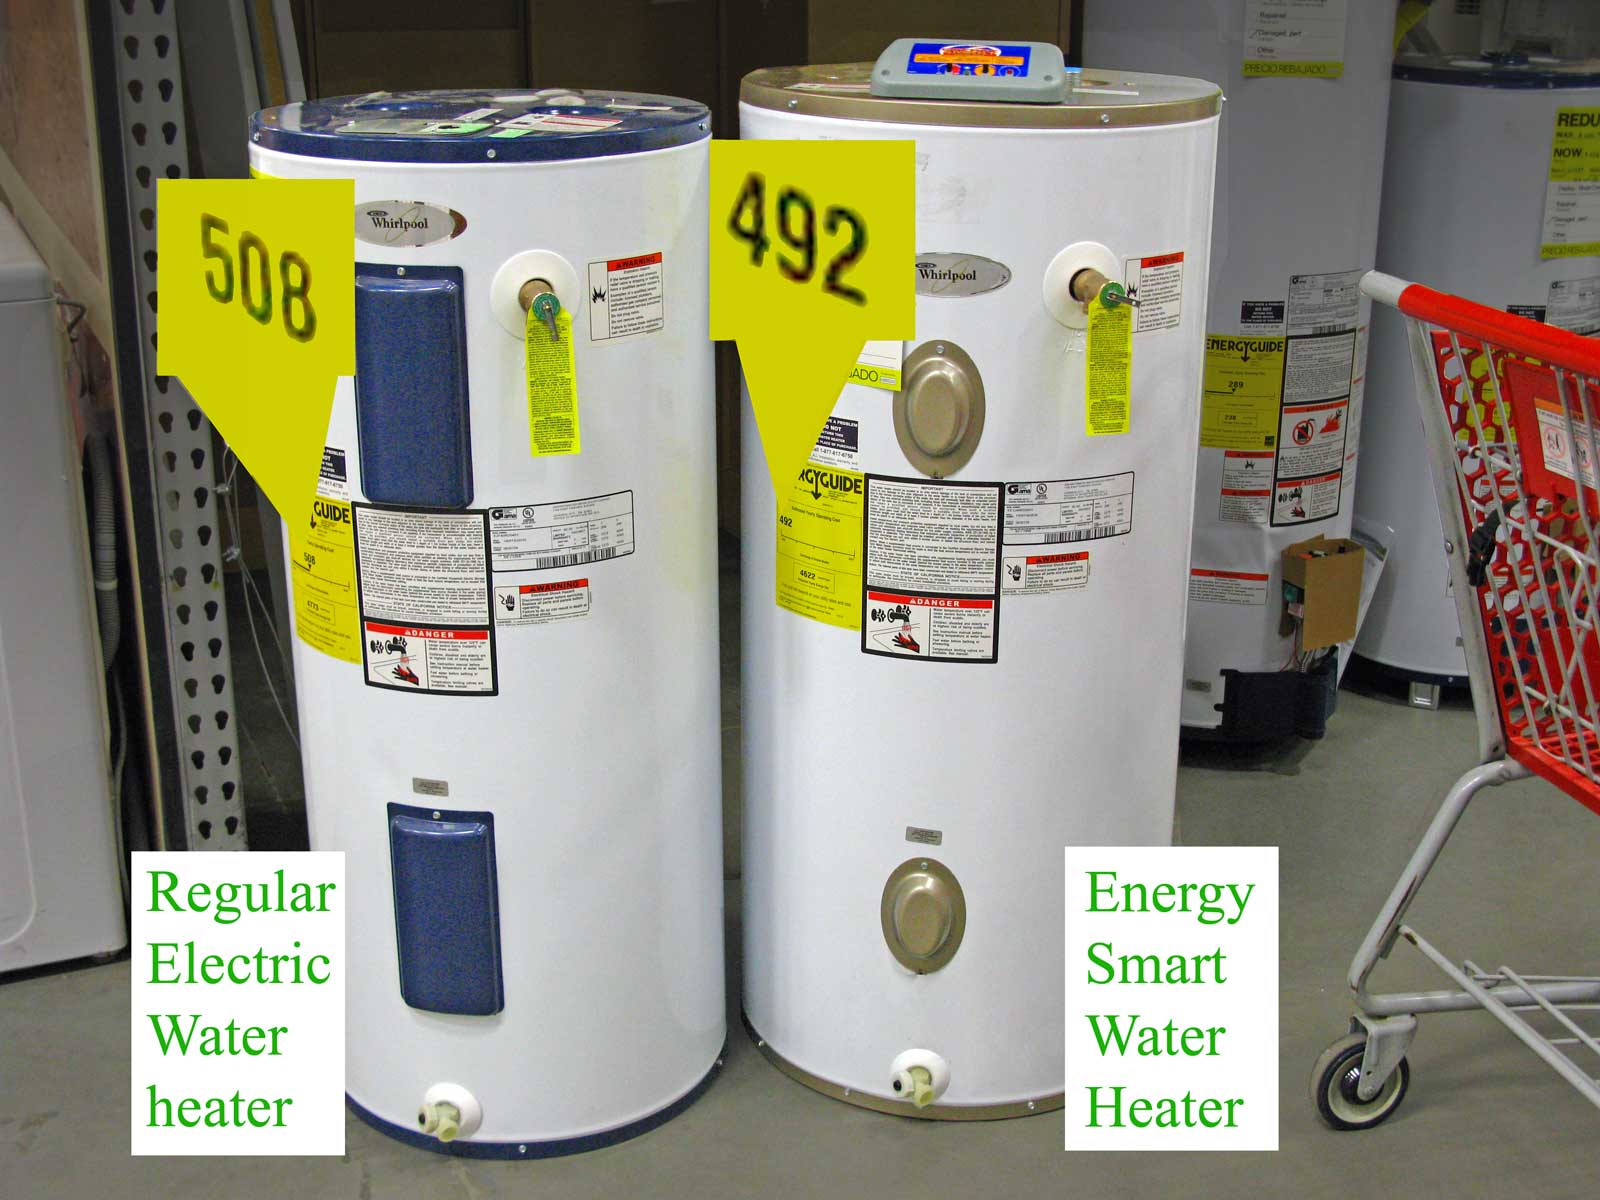 hight resolution of whirlpool energy smart water heater